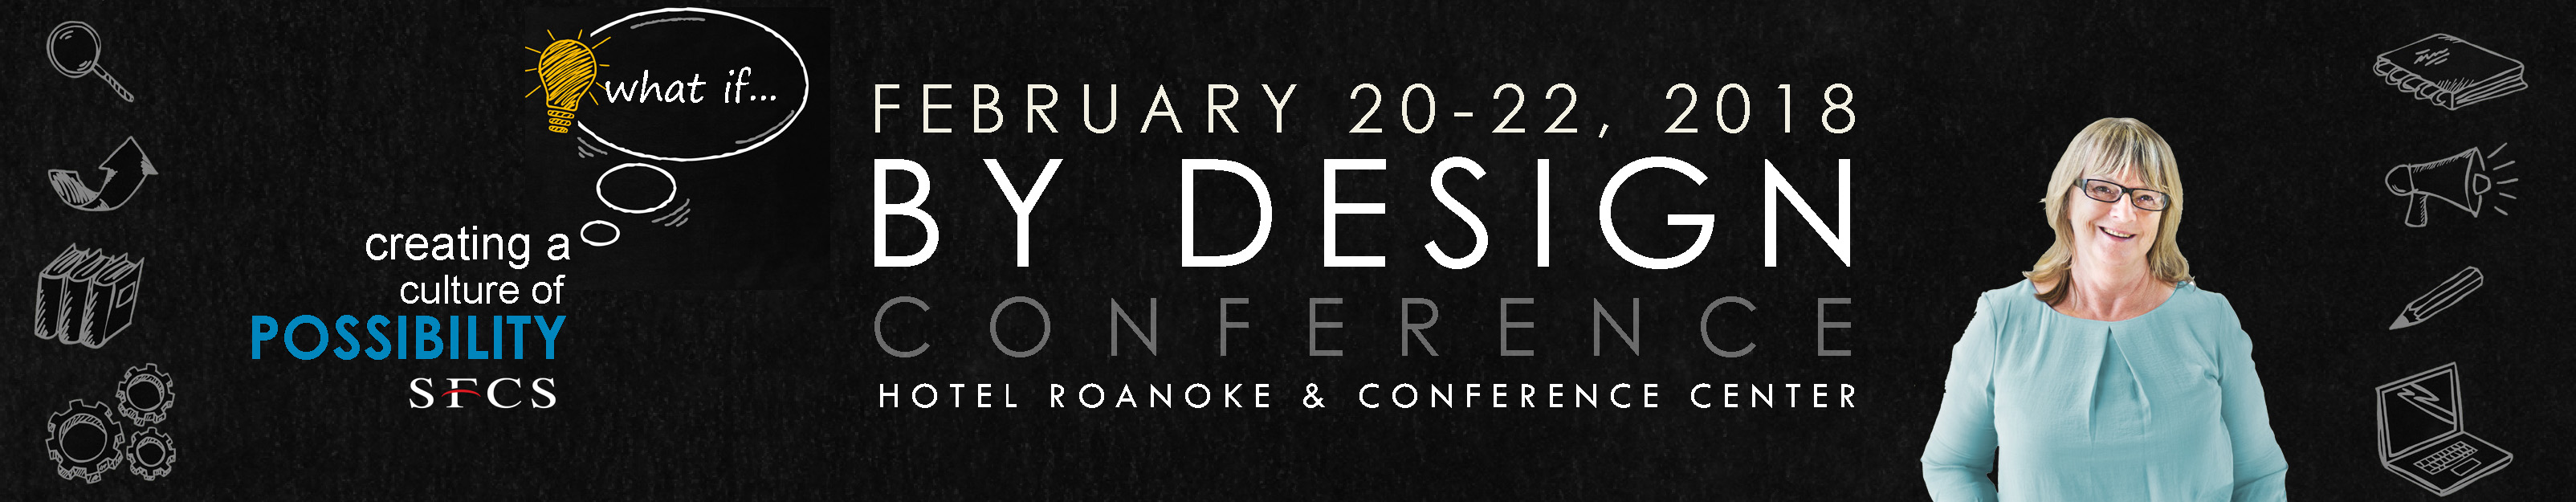 33rd Annual By Design Conference